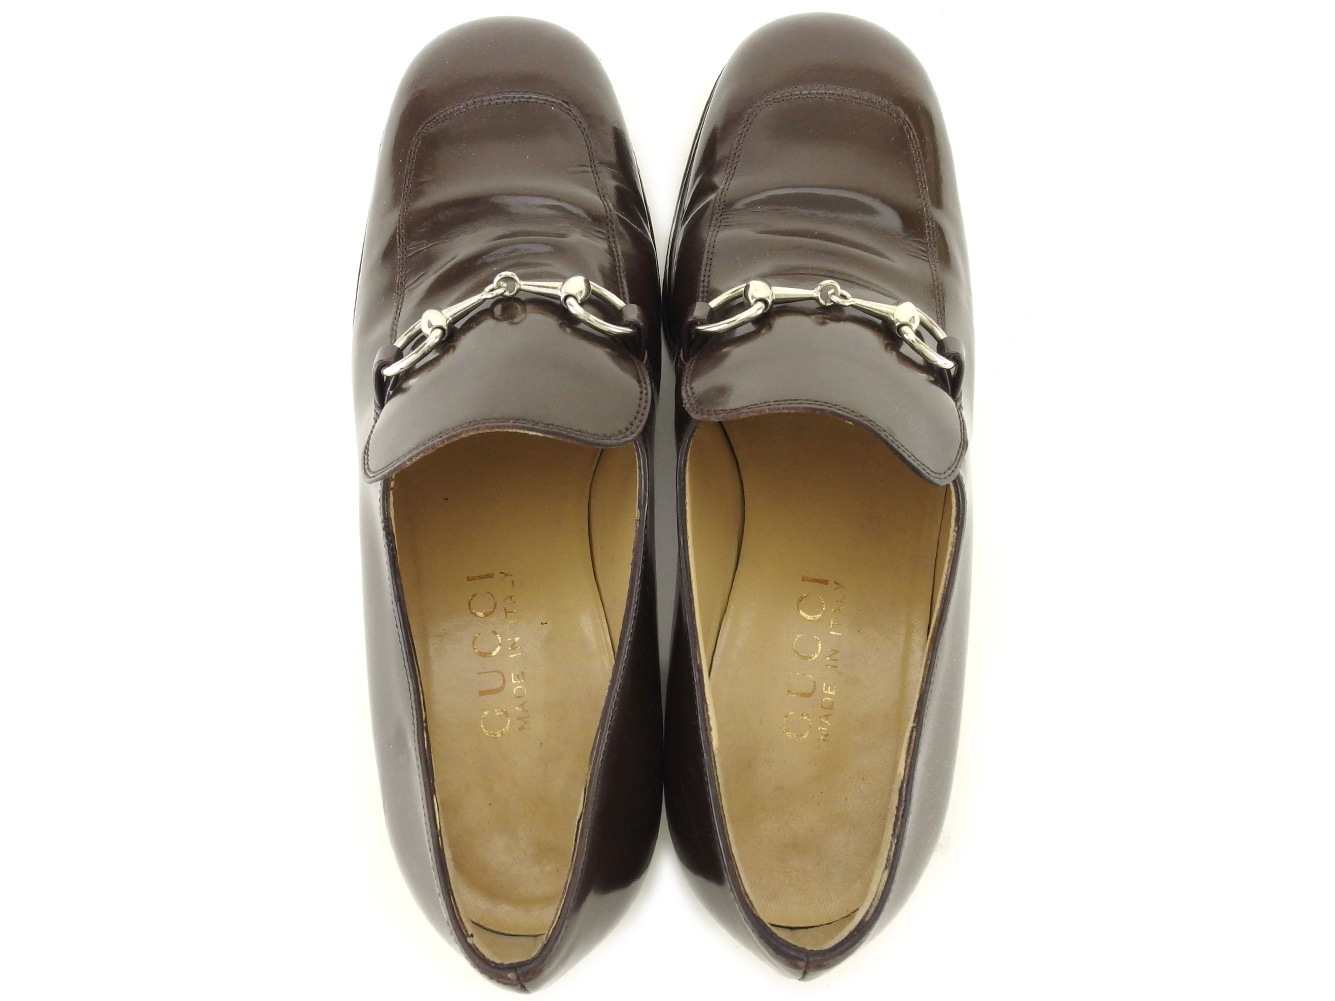 30f4738ef Gucci GUCCI loafer shoes shoes Lady's ♯ 35 half C hose bit brown silver  leather popularity sale L2835.